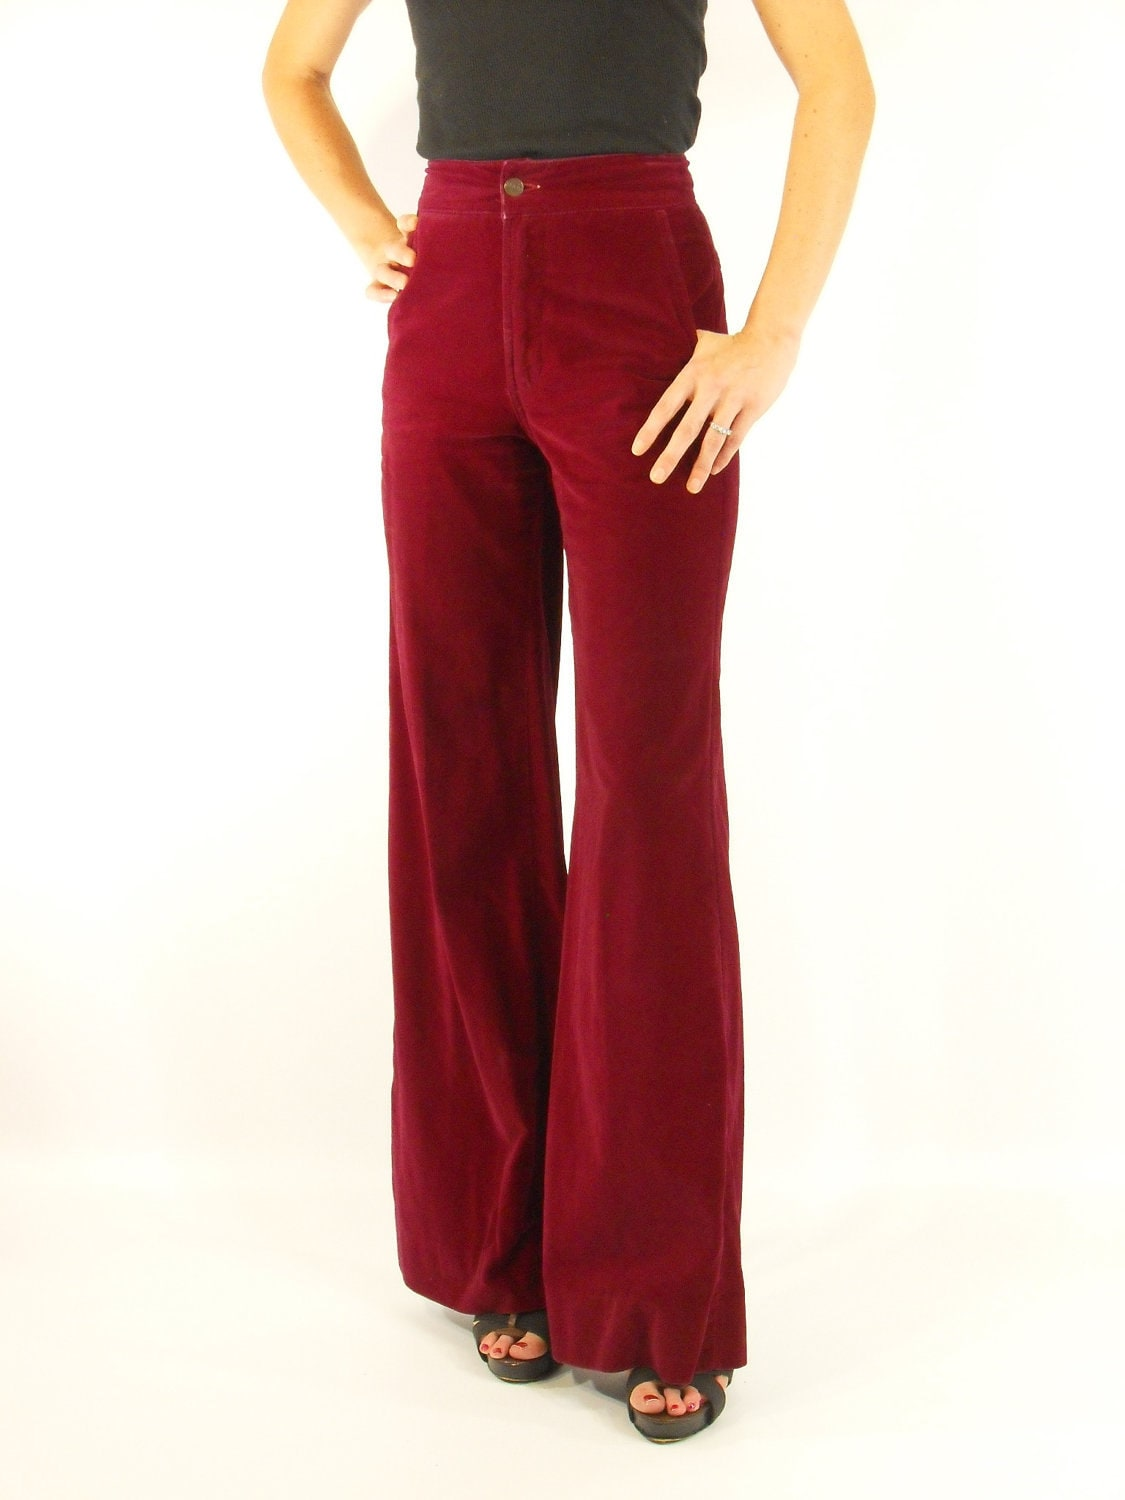 70s Red Velvet Trousers Pants Sm also Cute Cupcake Store together with Childs Play At Saraiva Bookstore moreover The African Style also The Egyptian Style. on rococo interior design